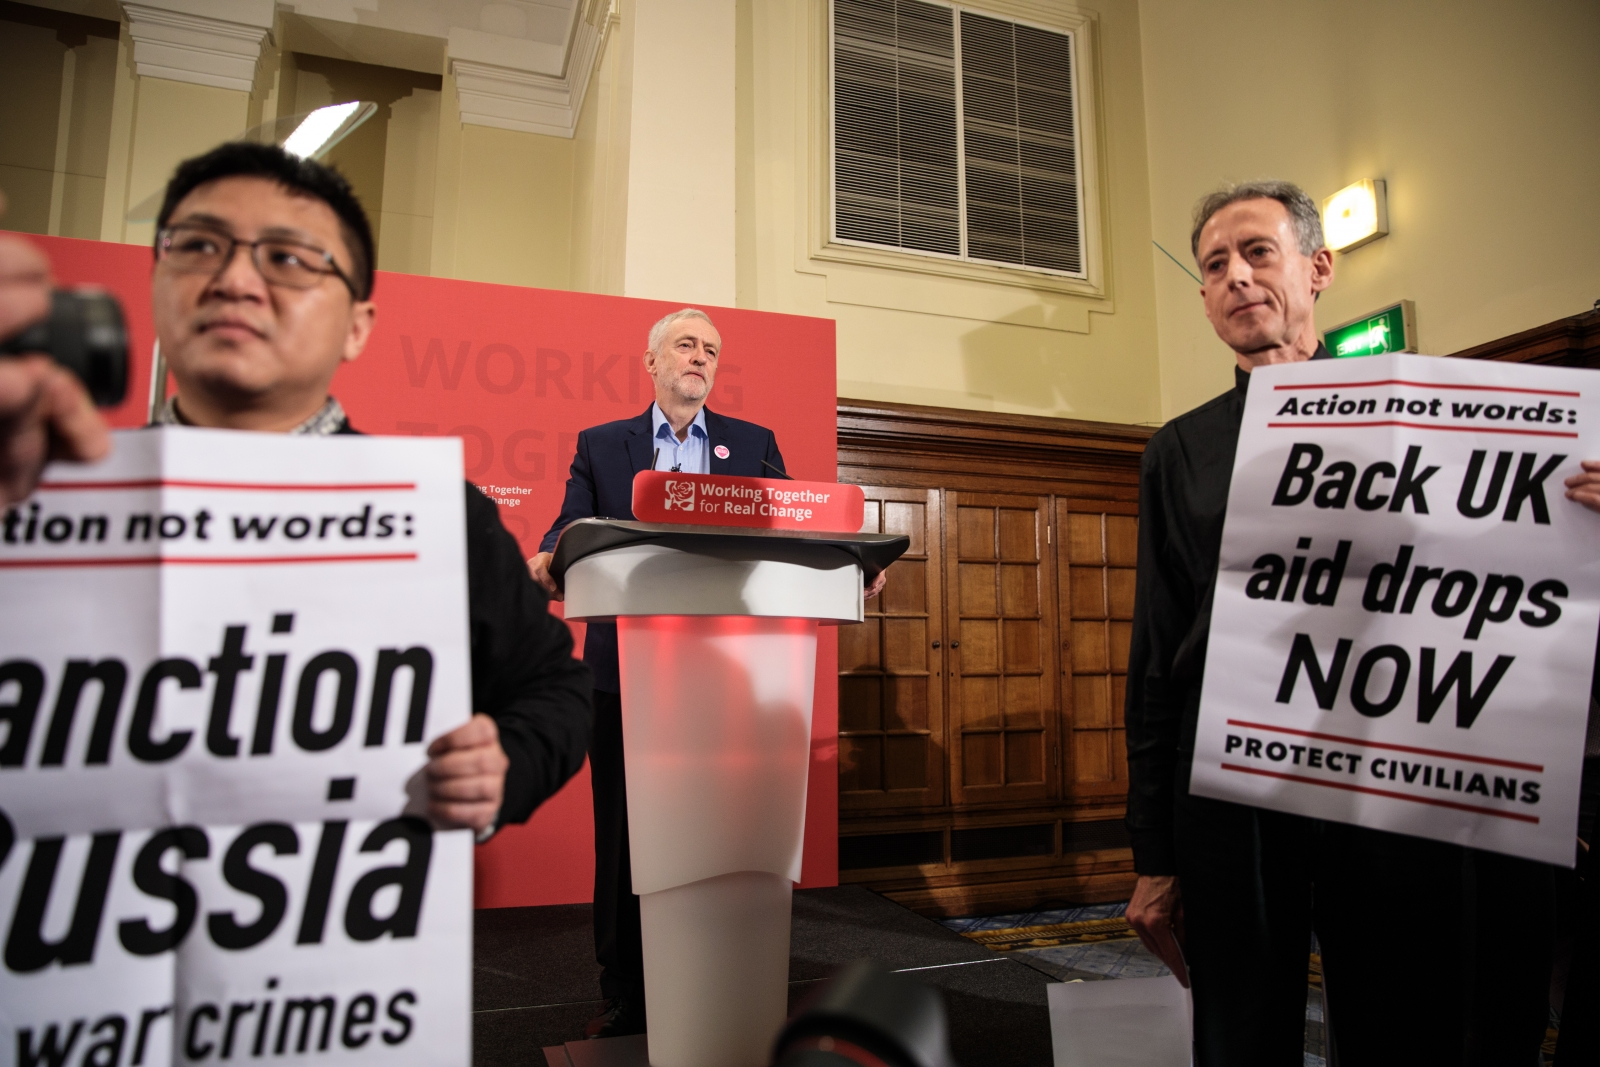 Peter Tatchell (R) stages a protest as Labour Leader Jeremy Corbyn (C) makes speech on International Human Rights Day